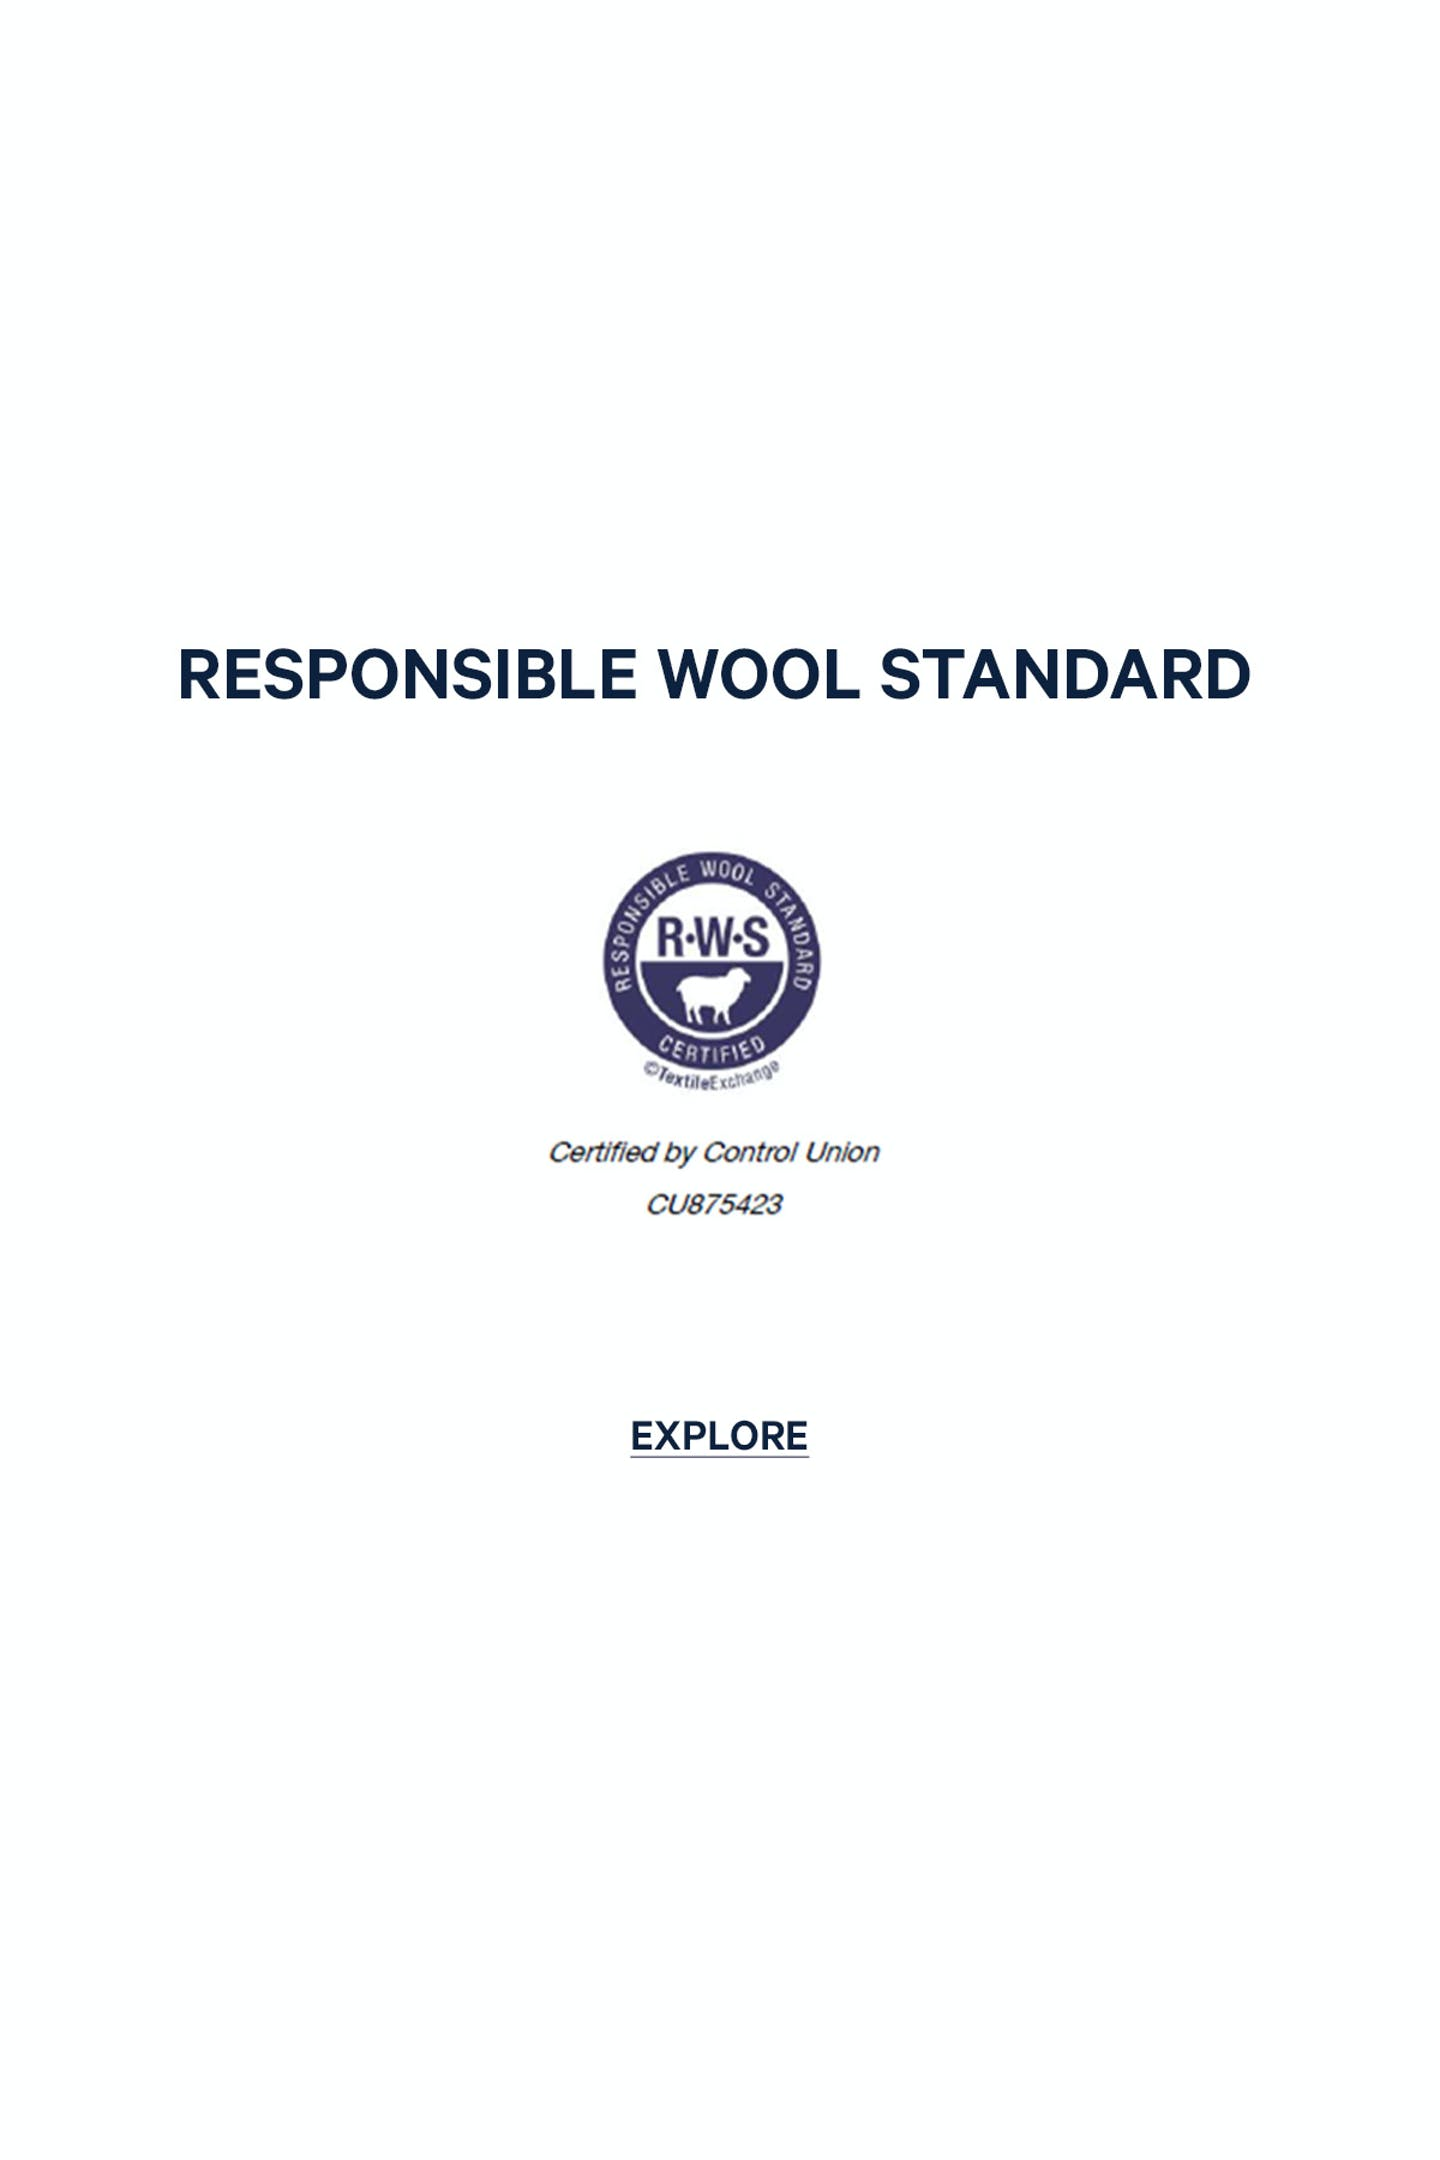 RESPONSIBLE WOLL STANDARD